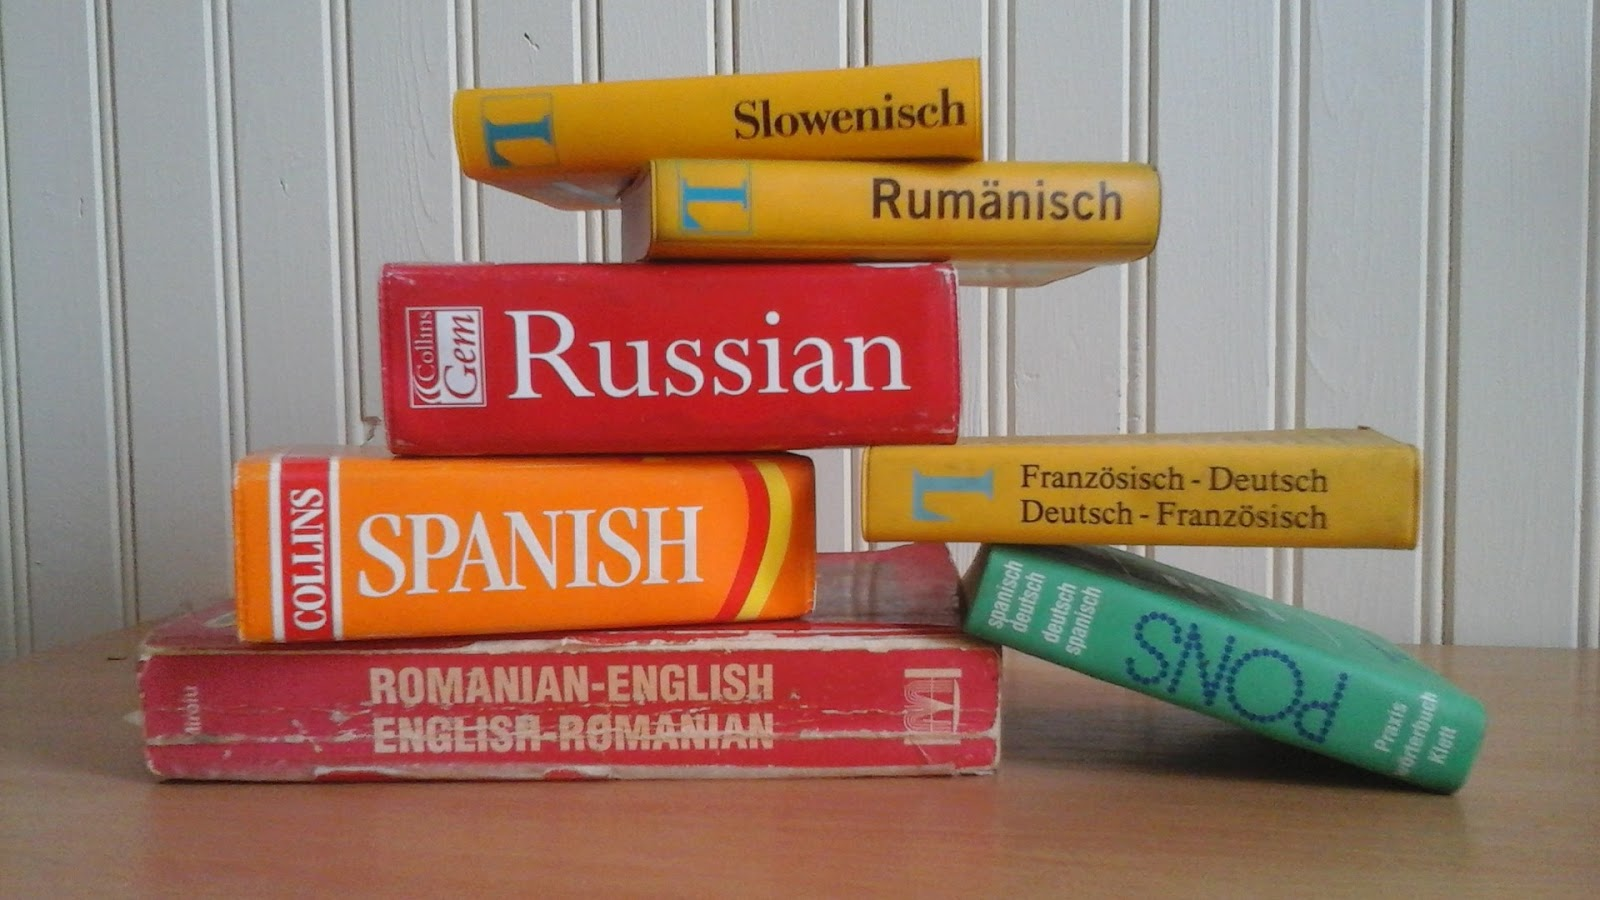 dictionaries for foreign languages stacked on top of each other for blog post about foreign language war movies